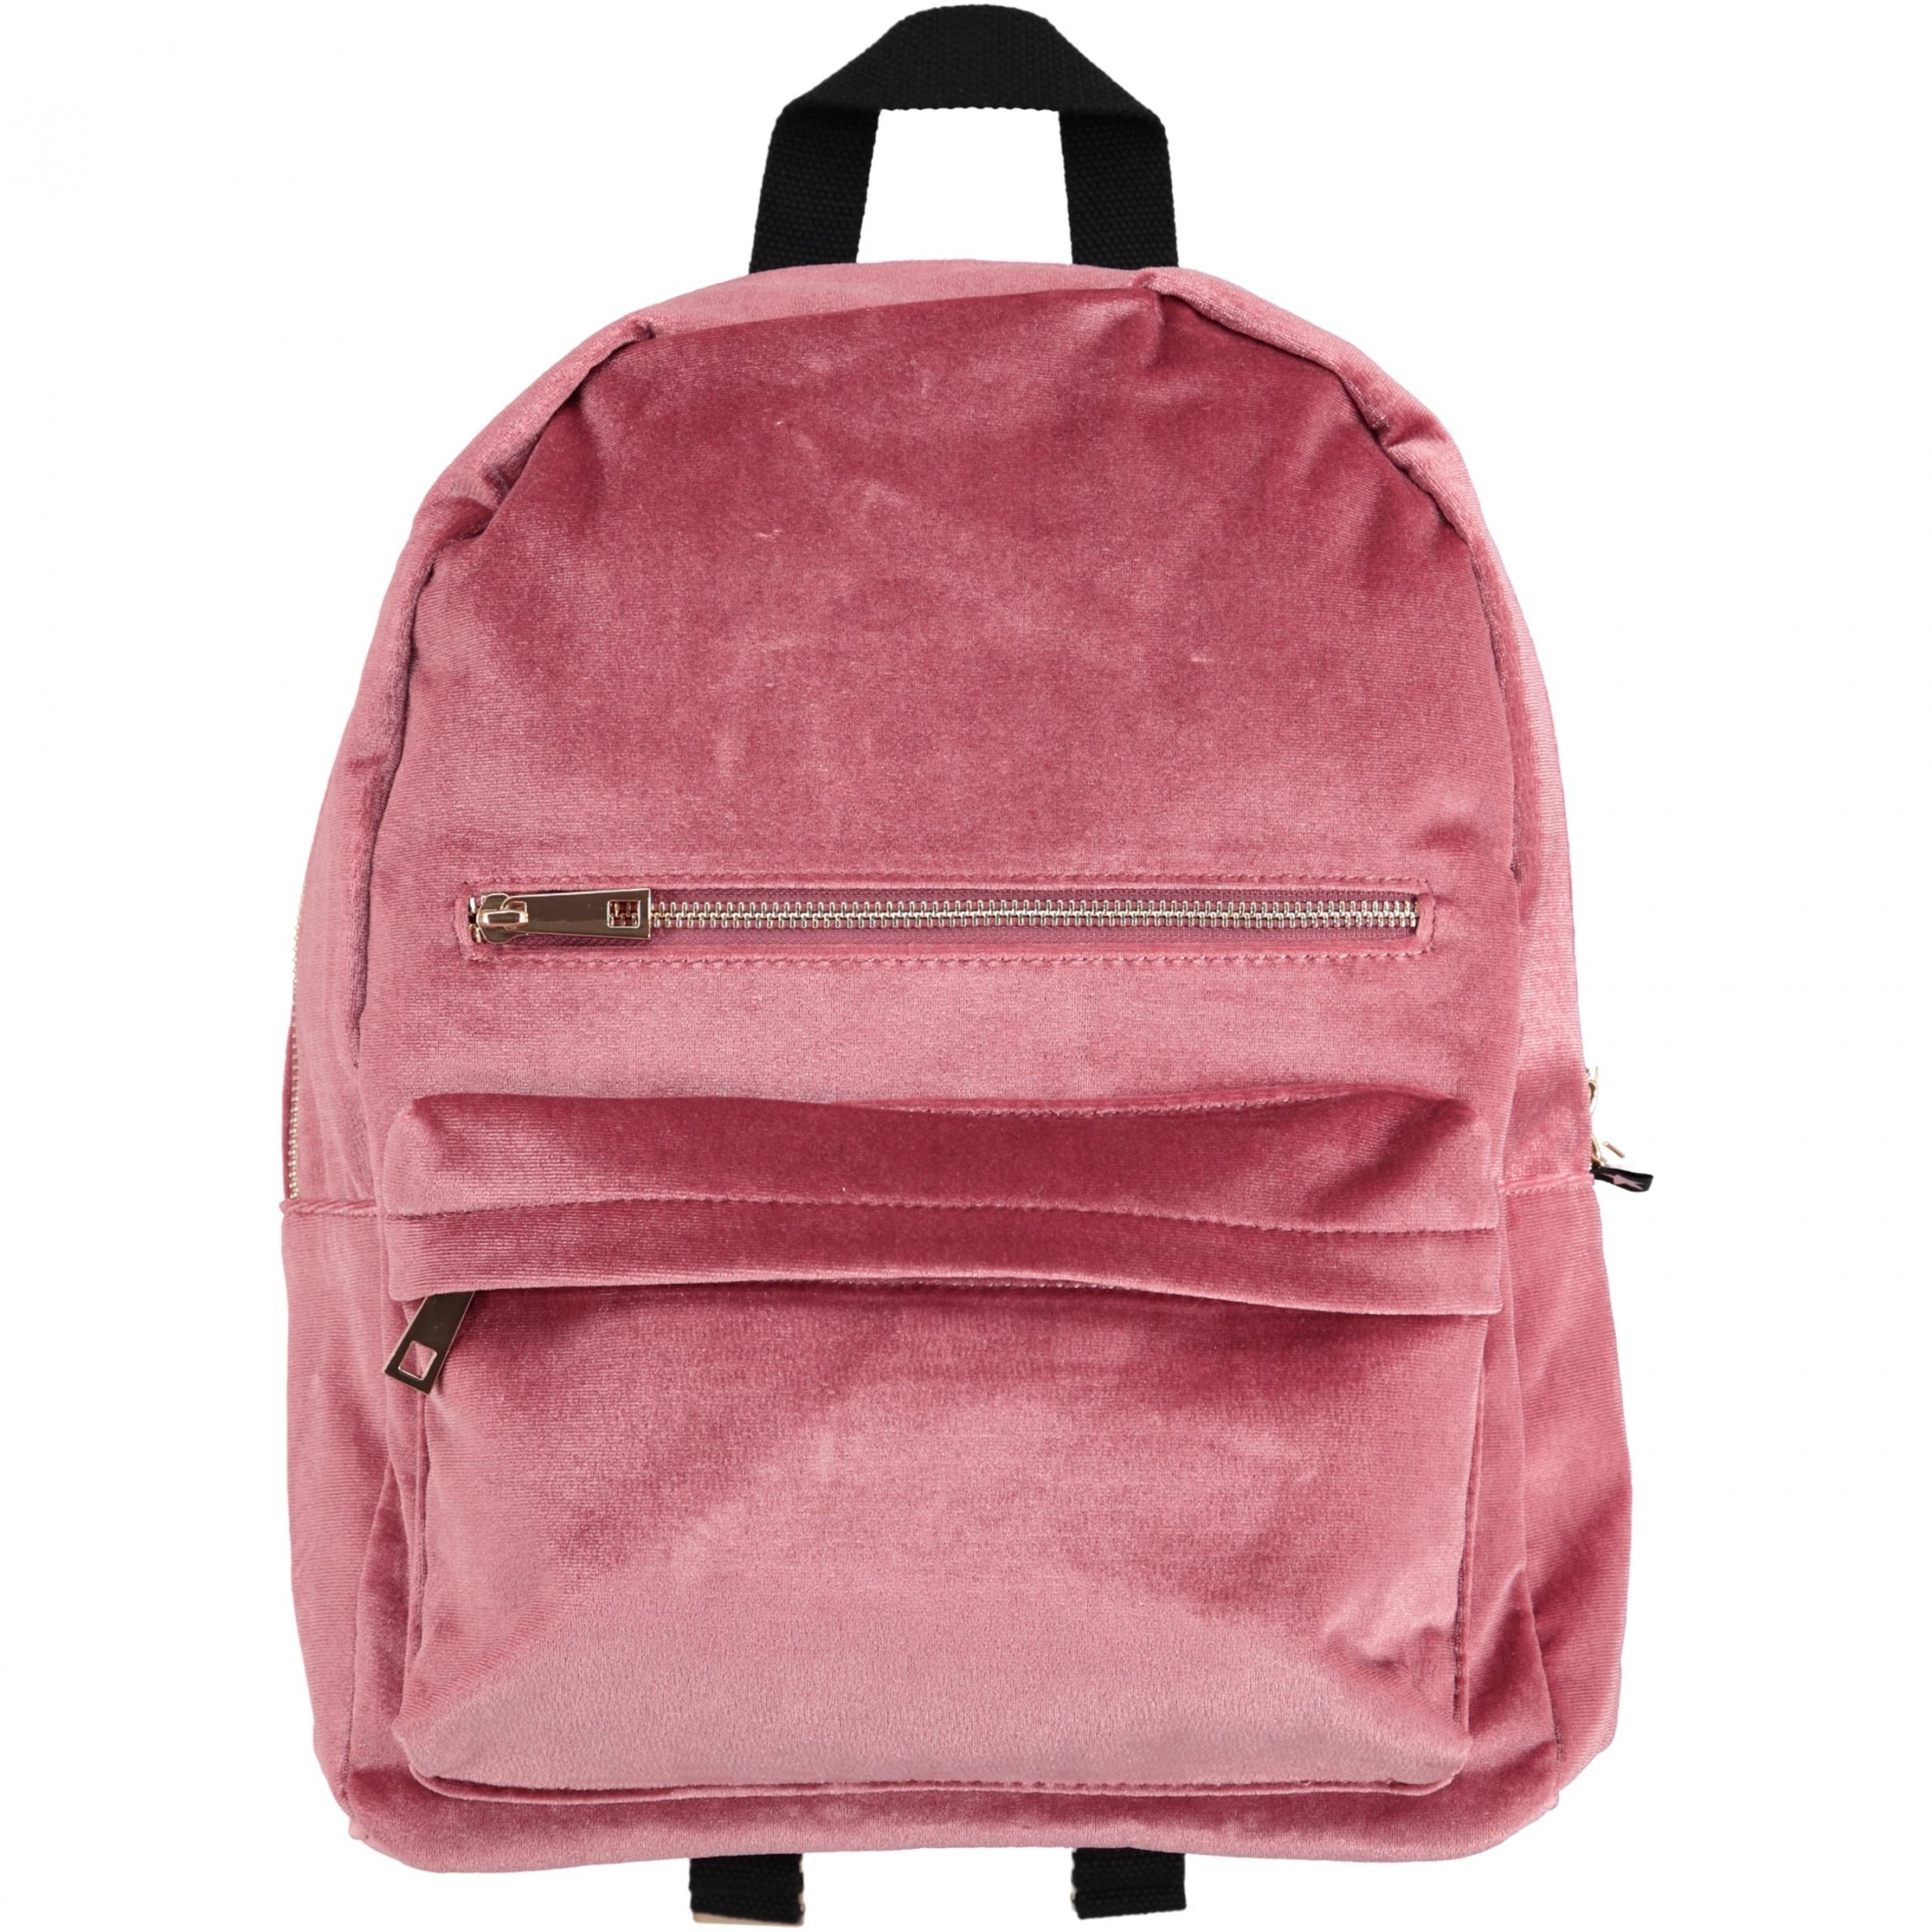 Pink Backpack - £52